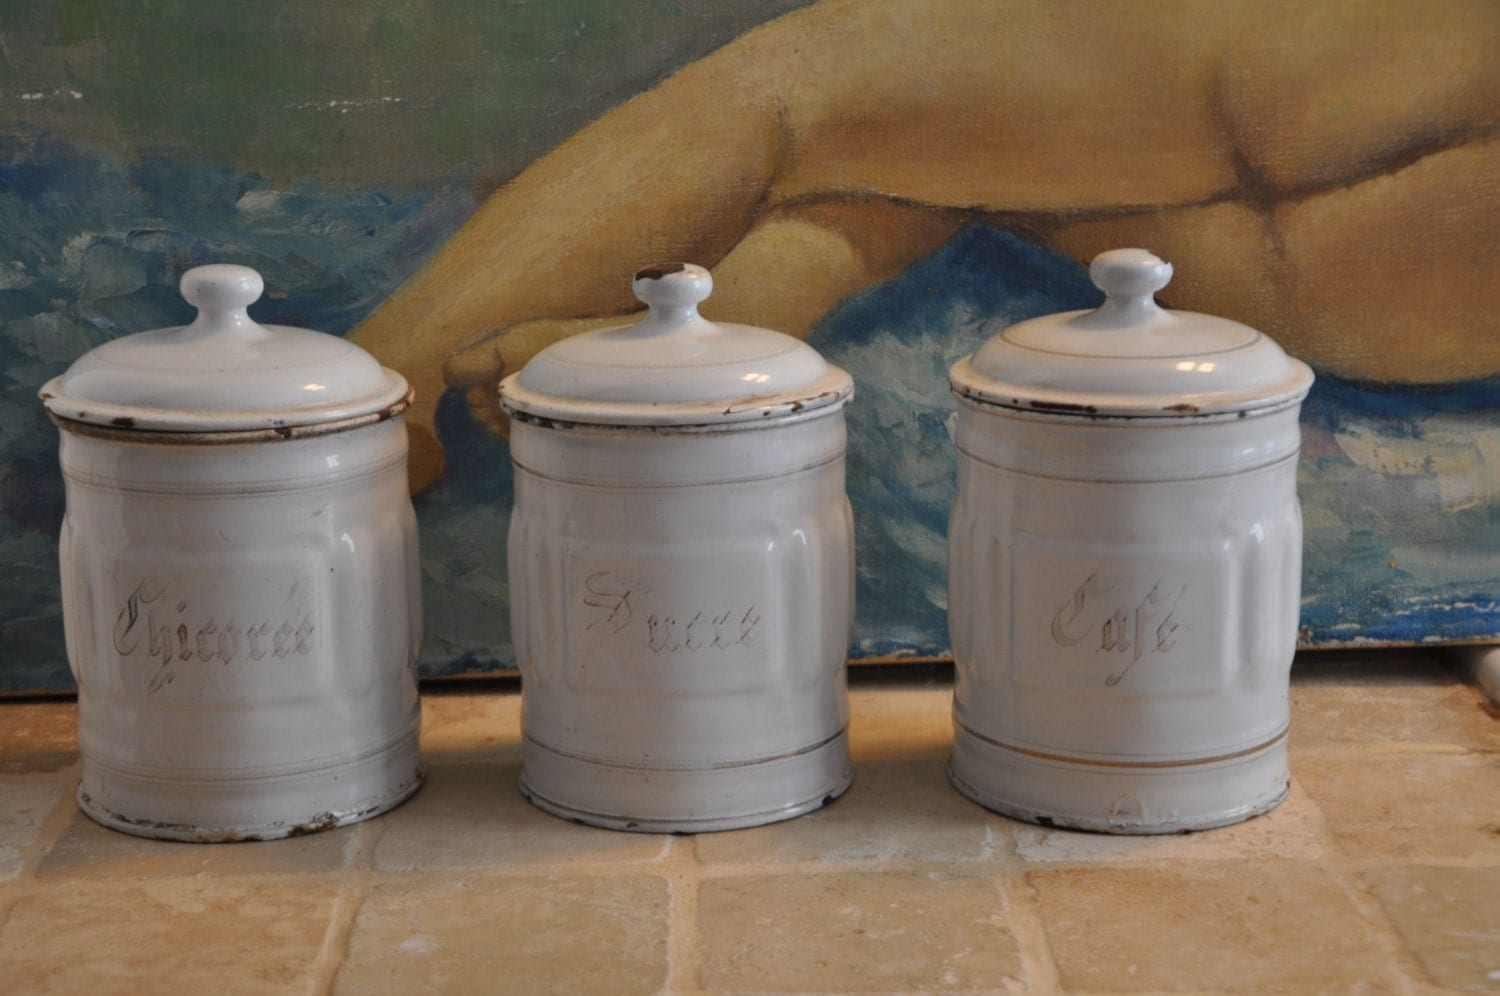 Vintage Kitchen Canisters French Enamel Canisters Kitchen